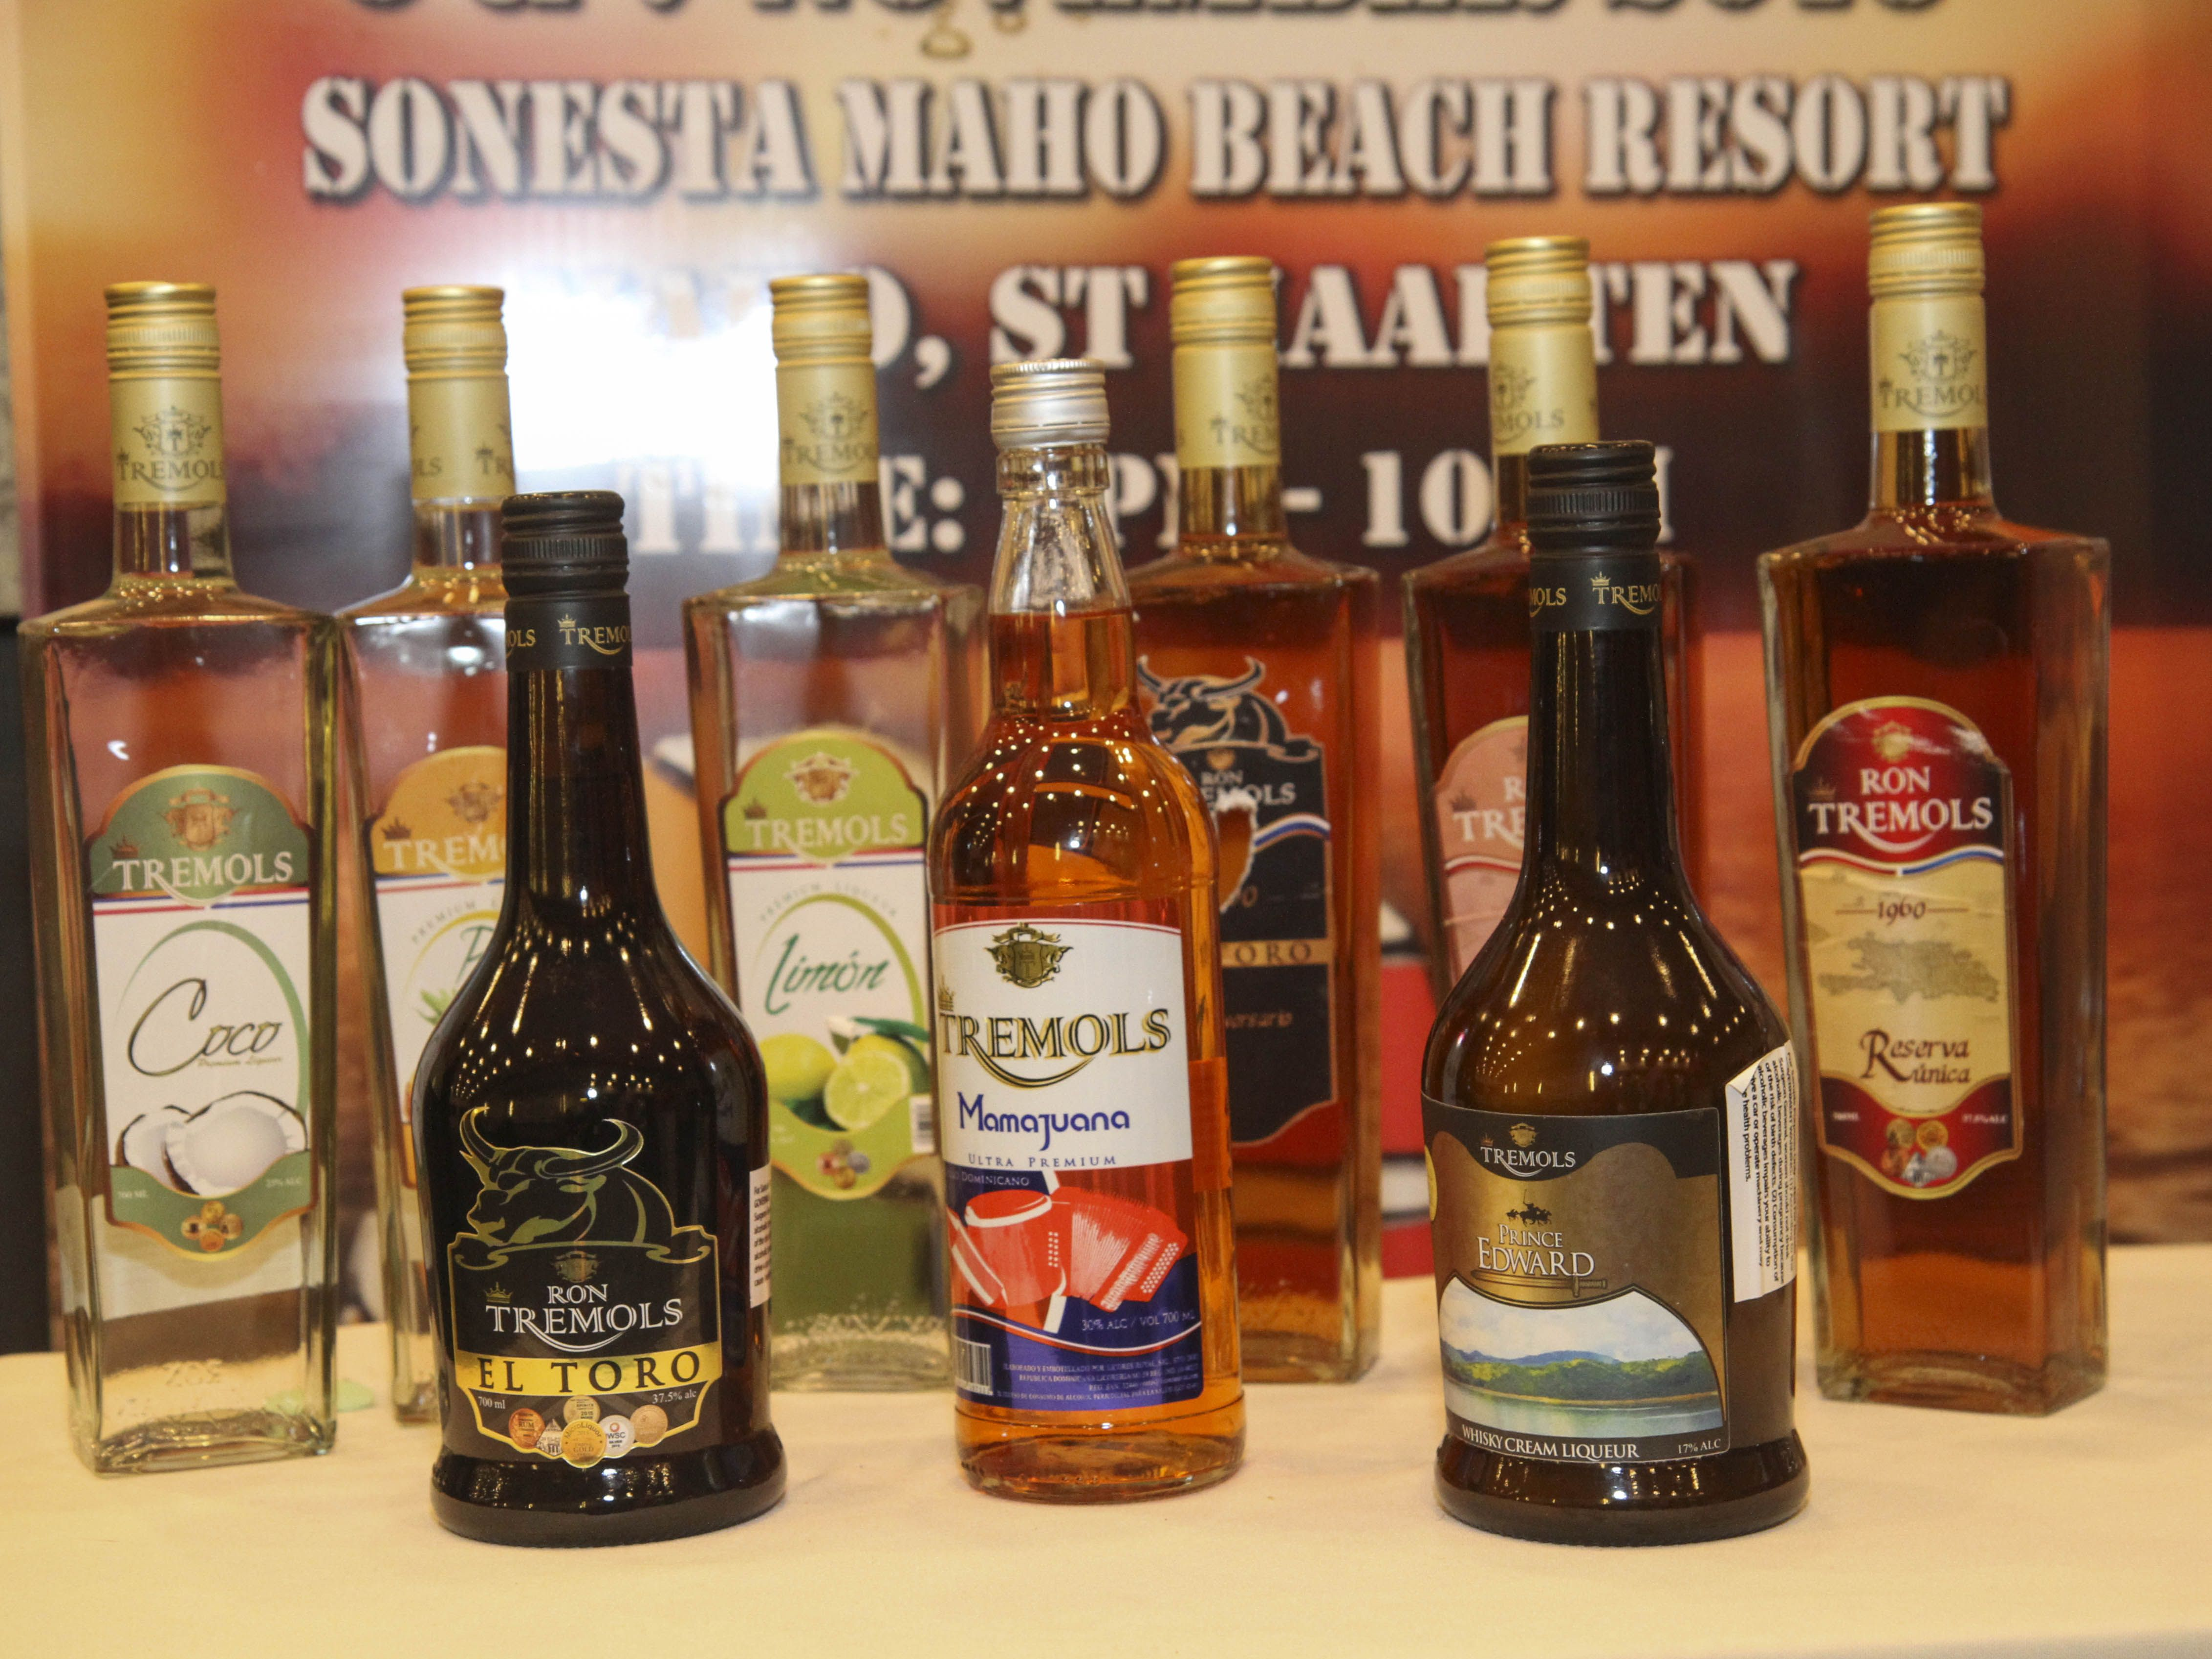 Caribbean Rum: Tremols Rum Of The Dominican Republic At The 2015